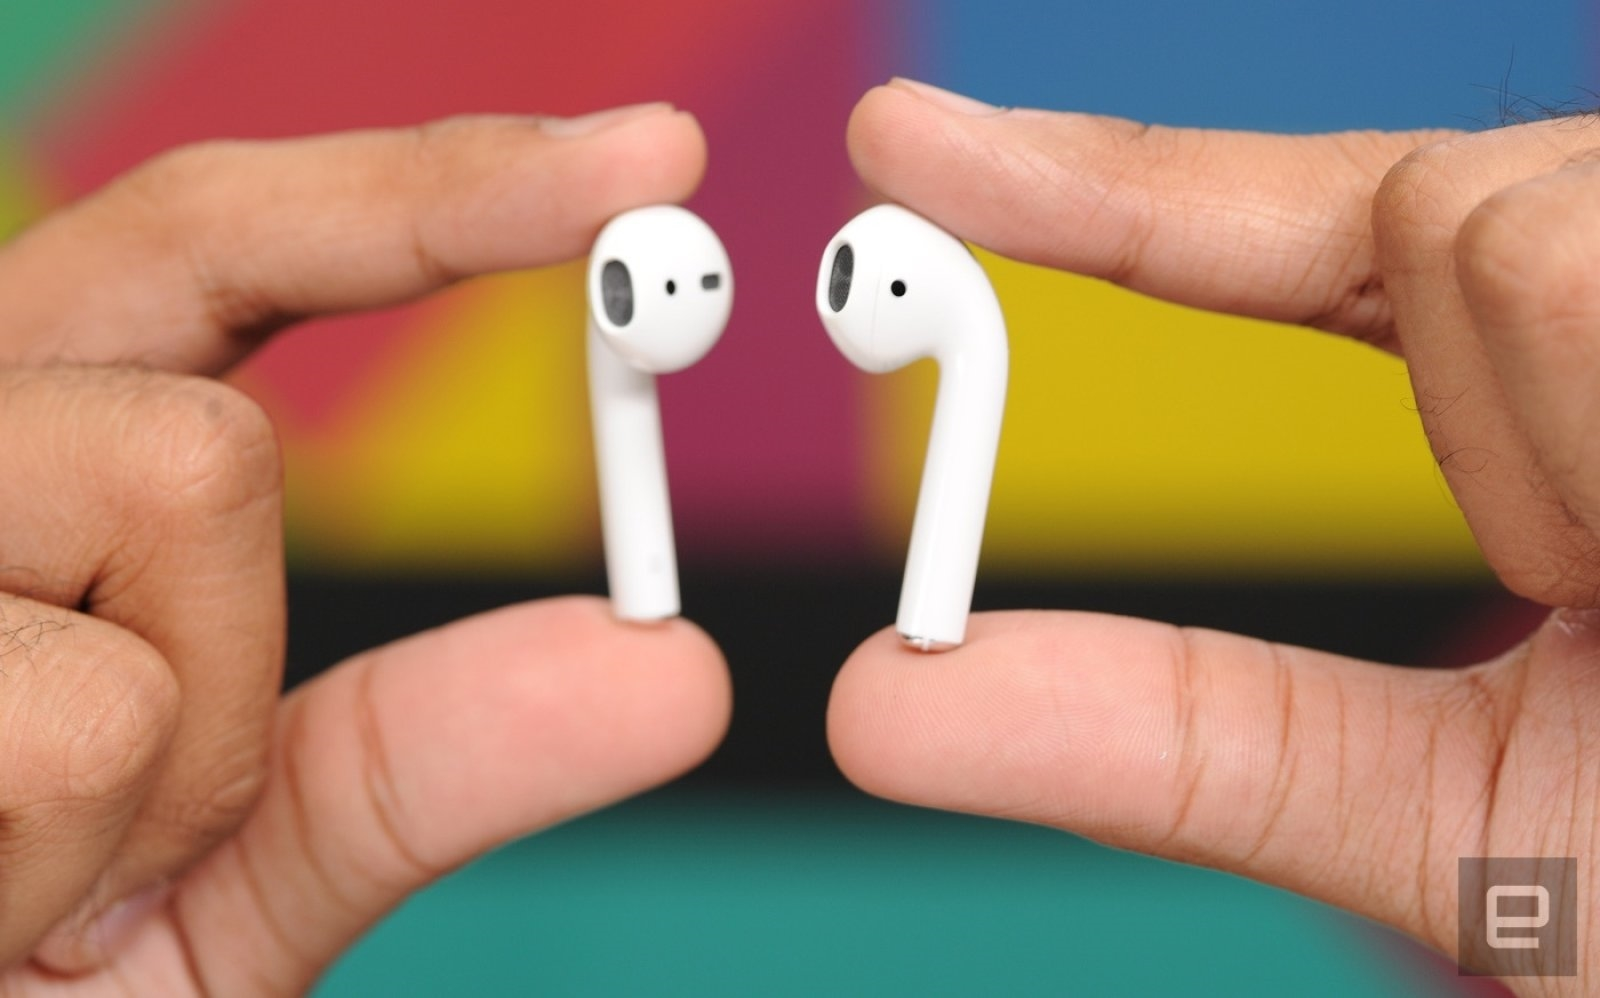 Apple AirPods are still the best-selling true wireless earbuds | DeviceDaily.com